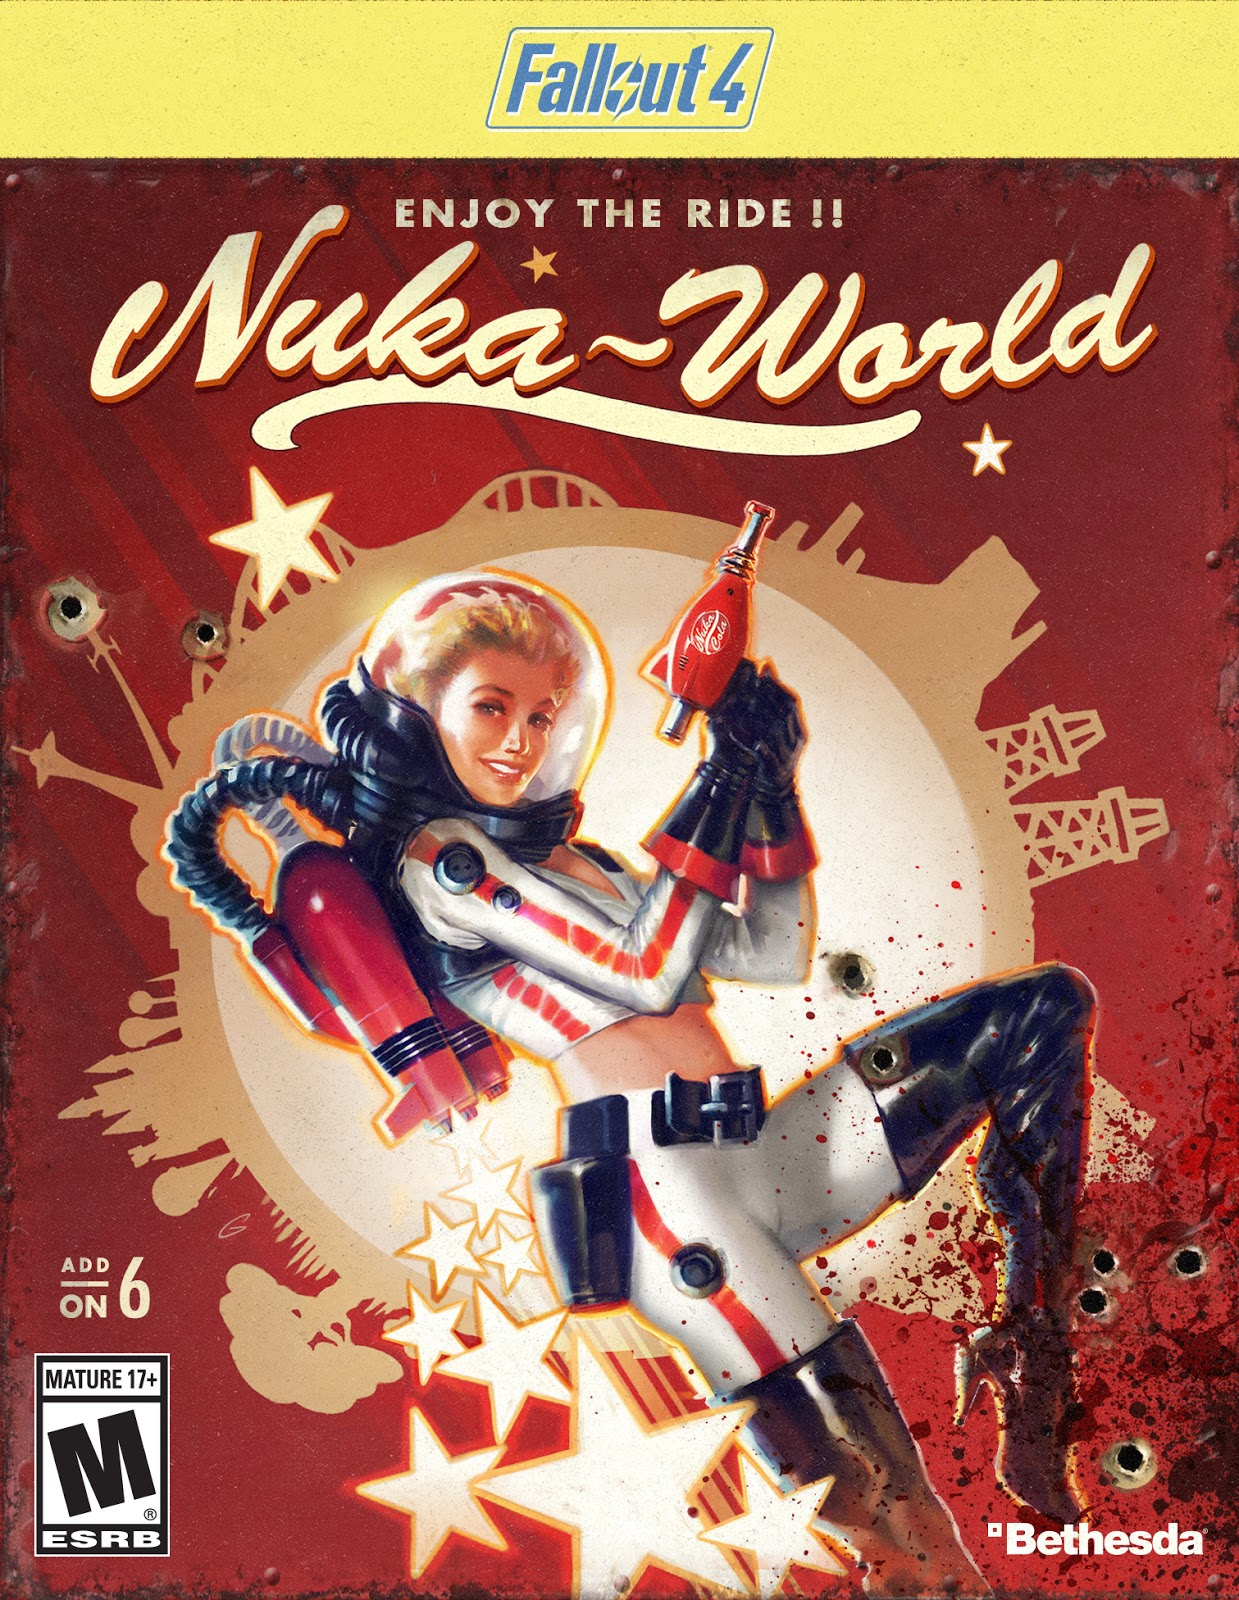 The Moral Ambiguity of Nuka World - Peace with scum or